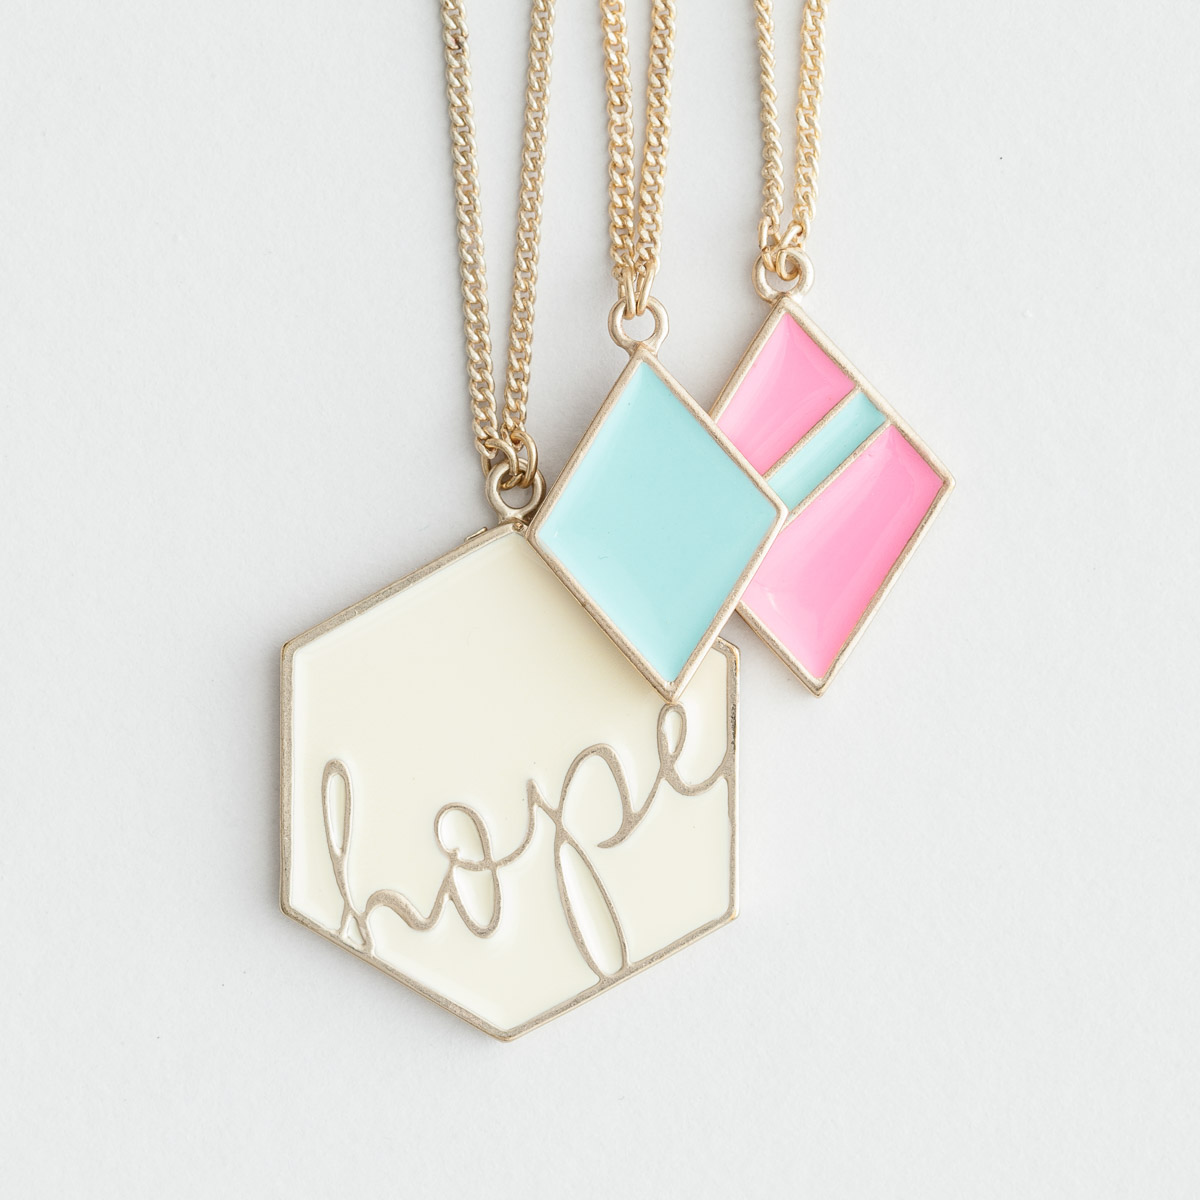 Hope - Gold Necklace